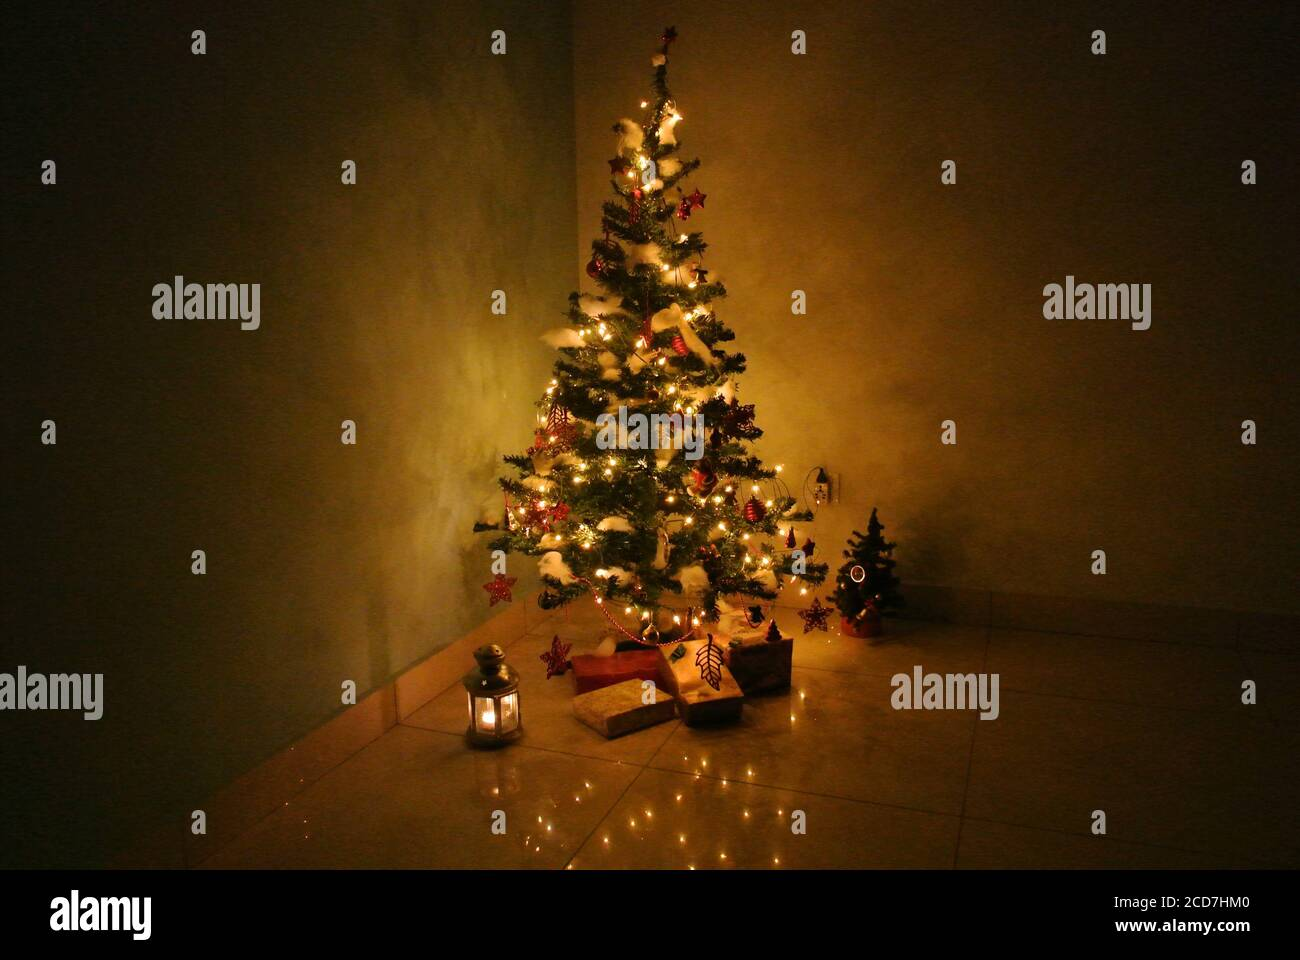 Lighted And Decorated Christmas Tree On A Dark Background With Presents And Lantern Underneath Warm String Lights Illuminates The Tree Stock Photo Alamy